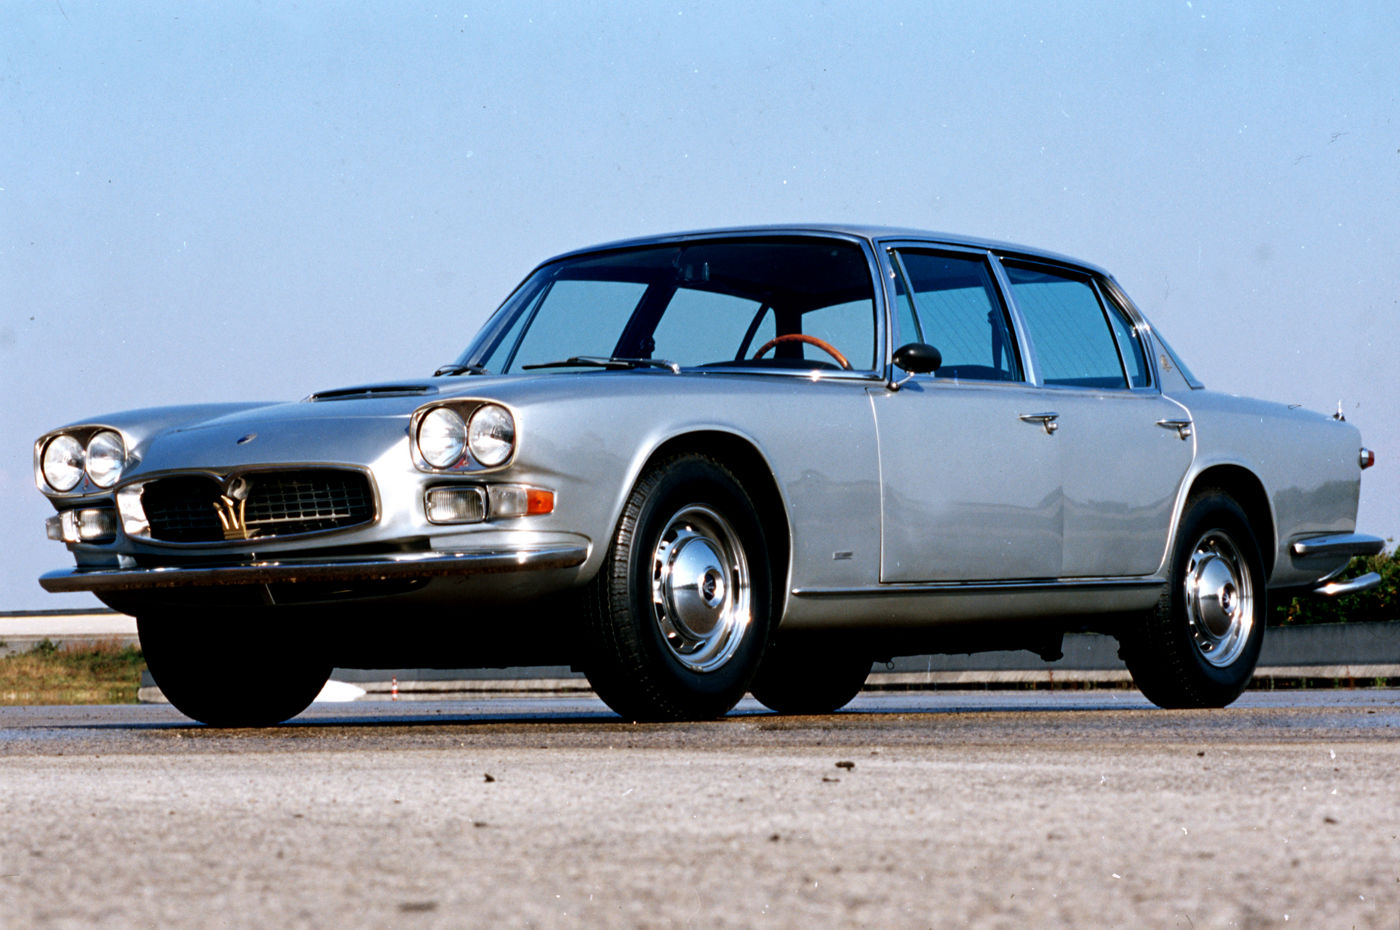 1966 Maserati Quattroporte I - Second Series - exterior view of the the 5-seater sedan